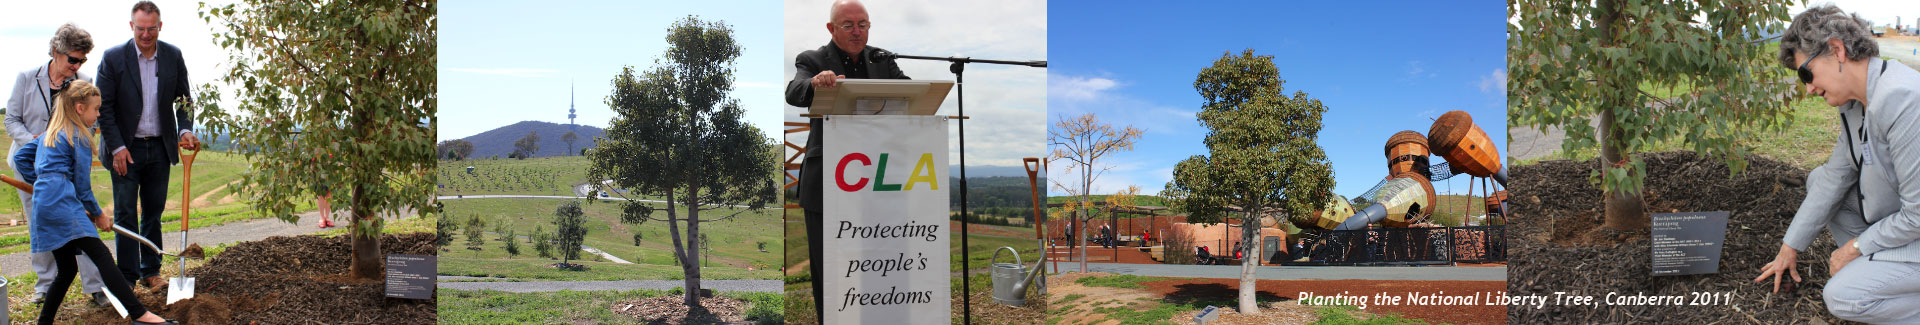 Civil Liberties Australia